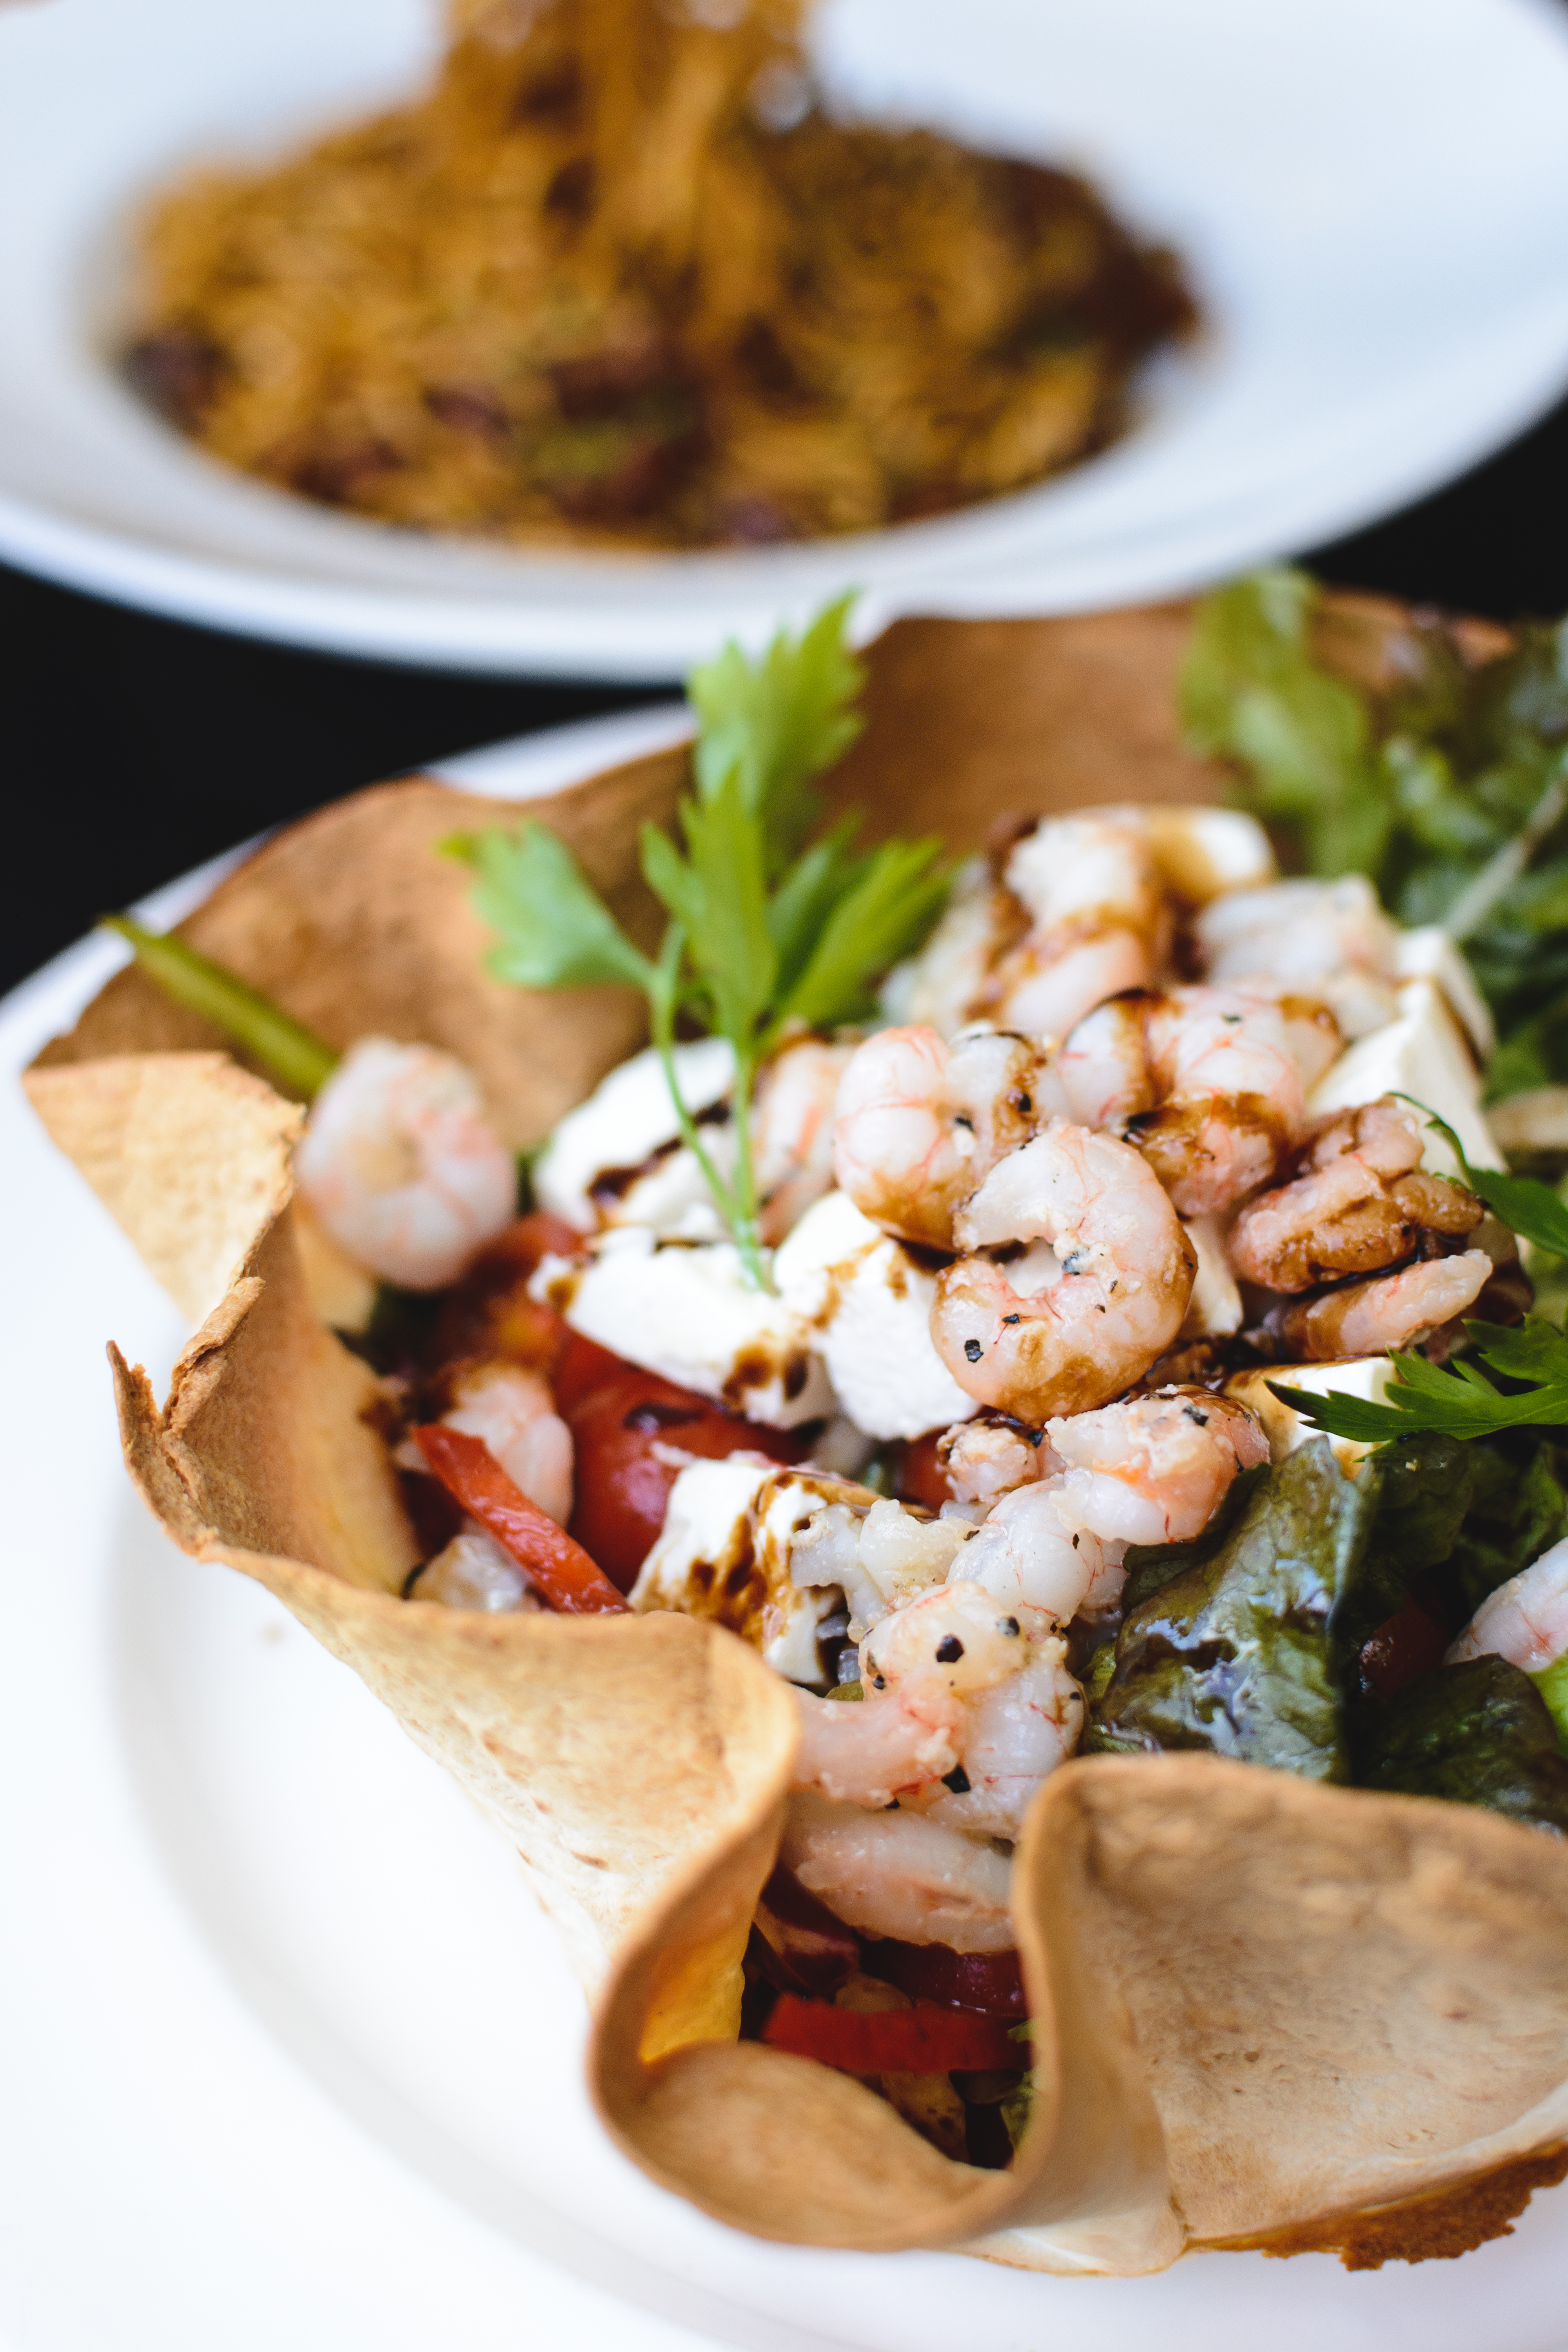 Salad with shrimps and feta cheese